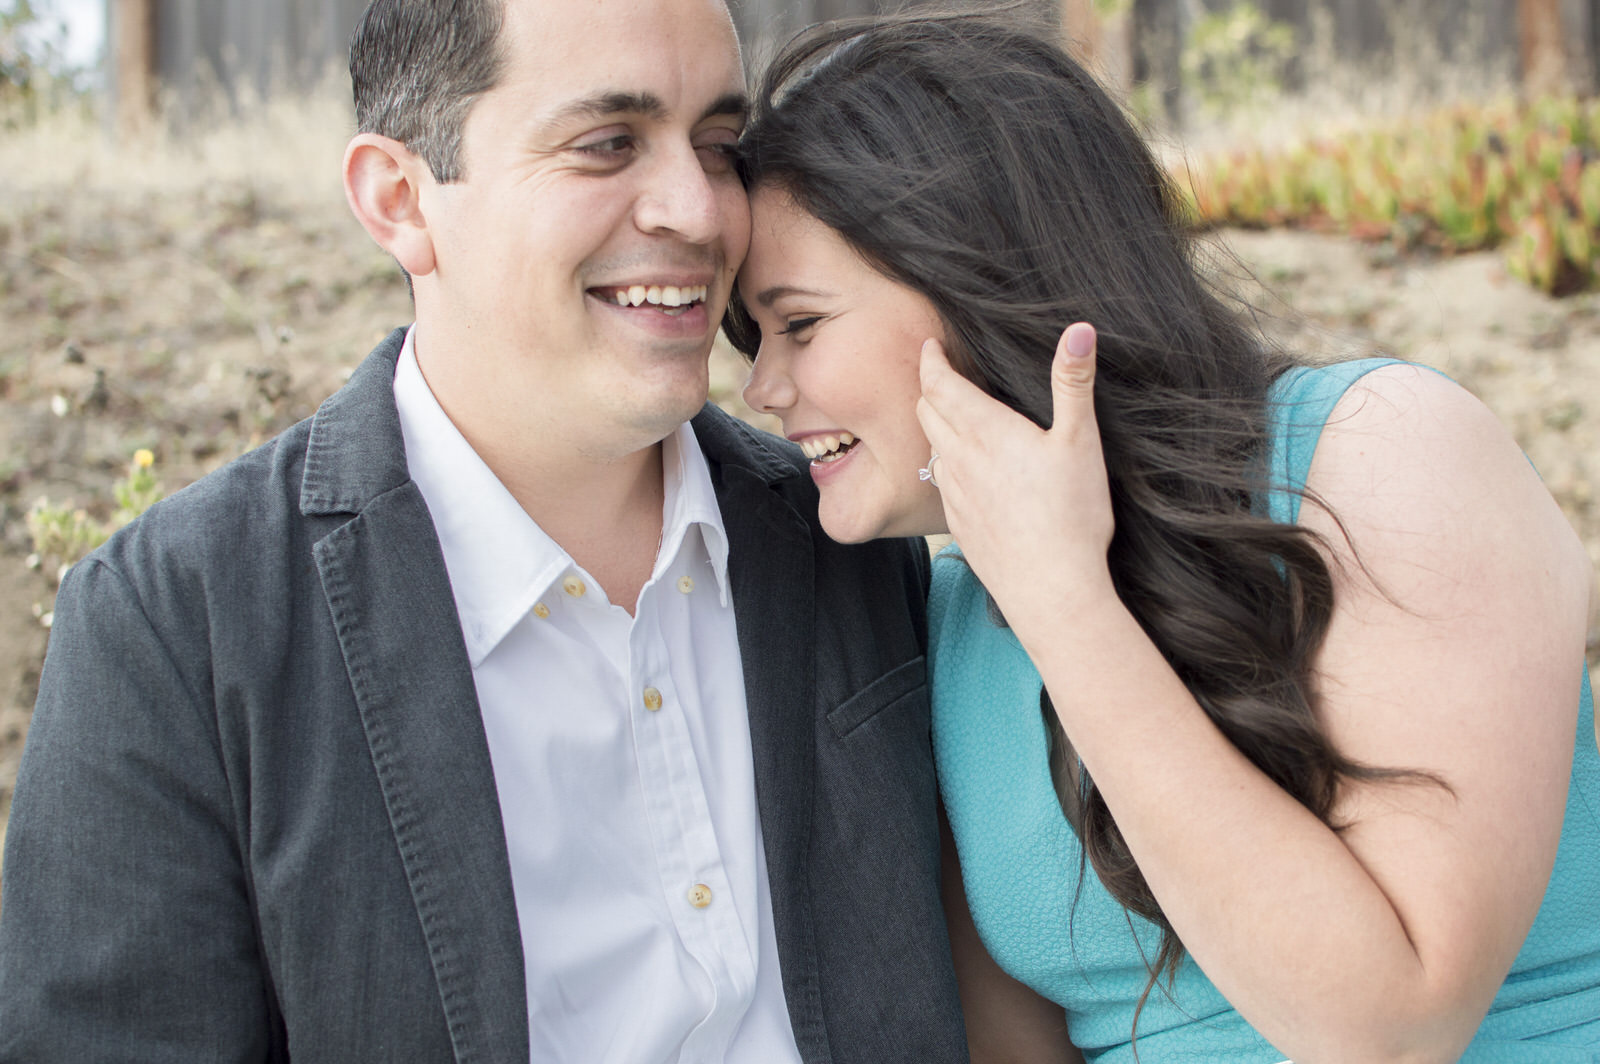 Javi & Claudia - Fitzgerald Marine Reserve engagement photography by Jaclyn Le